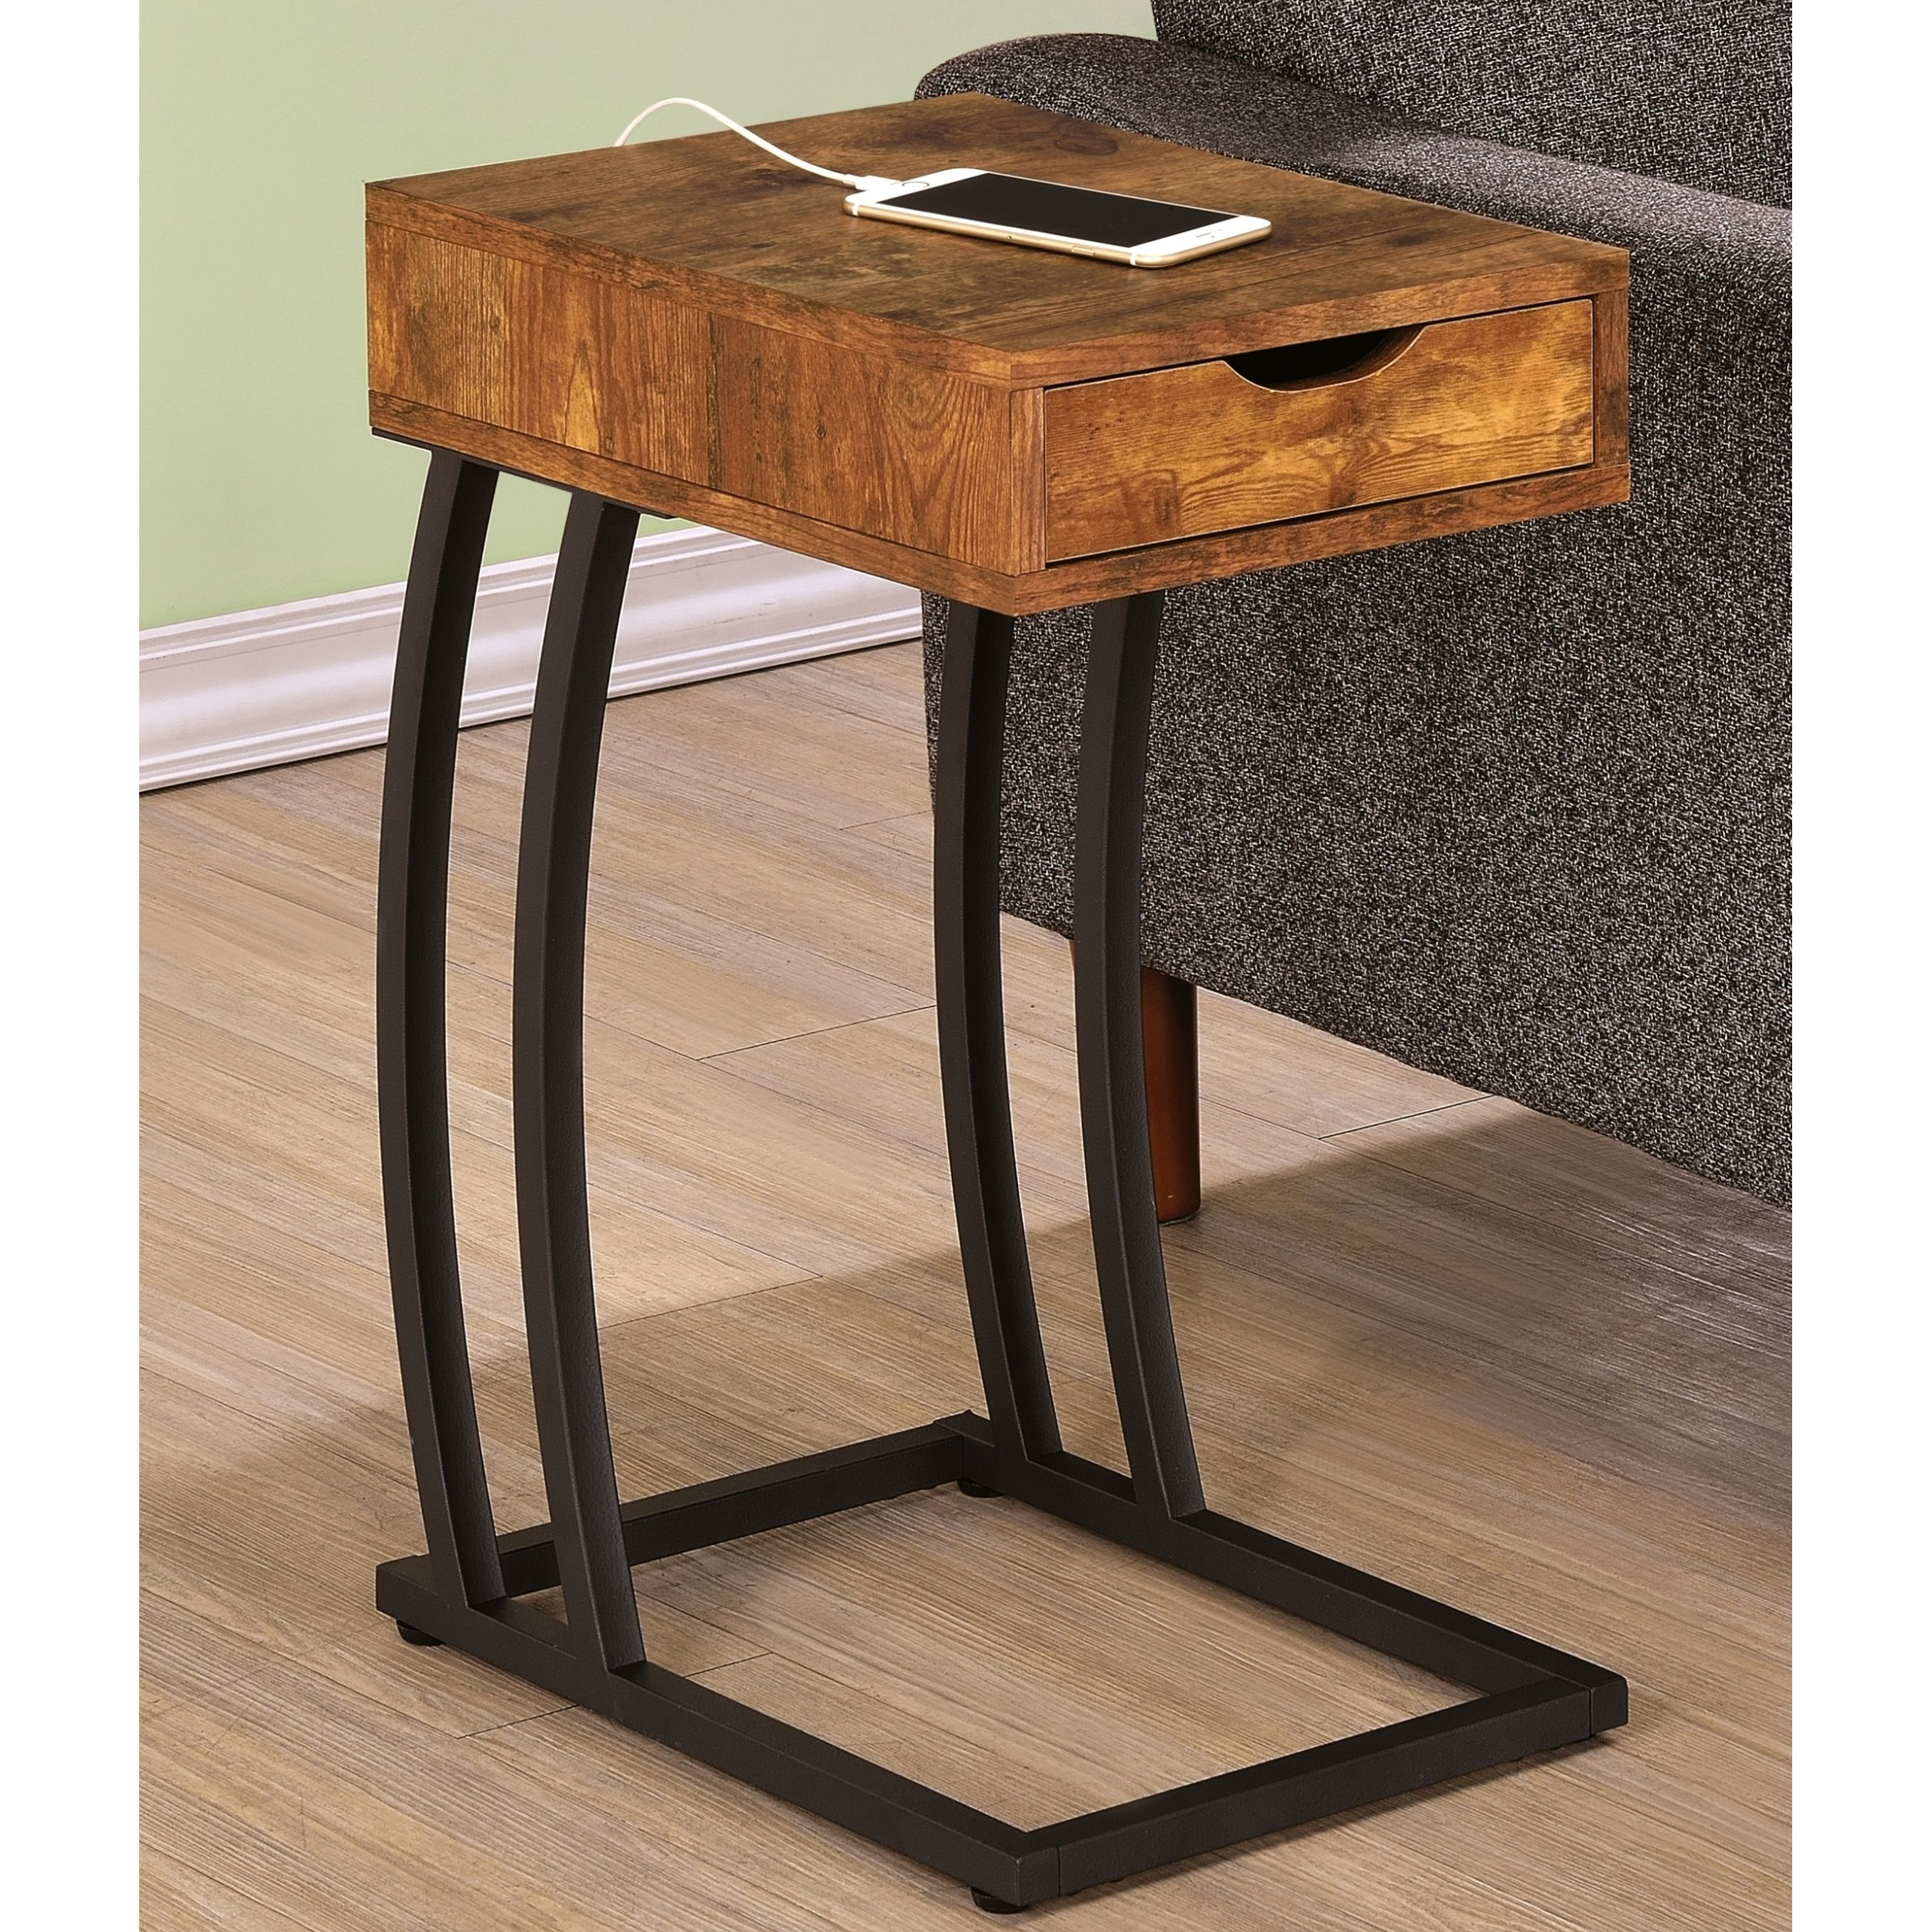 Accent Your Home With This Stylish Table Features An